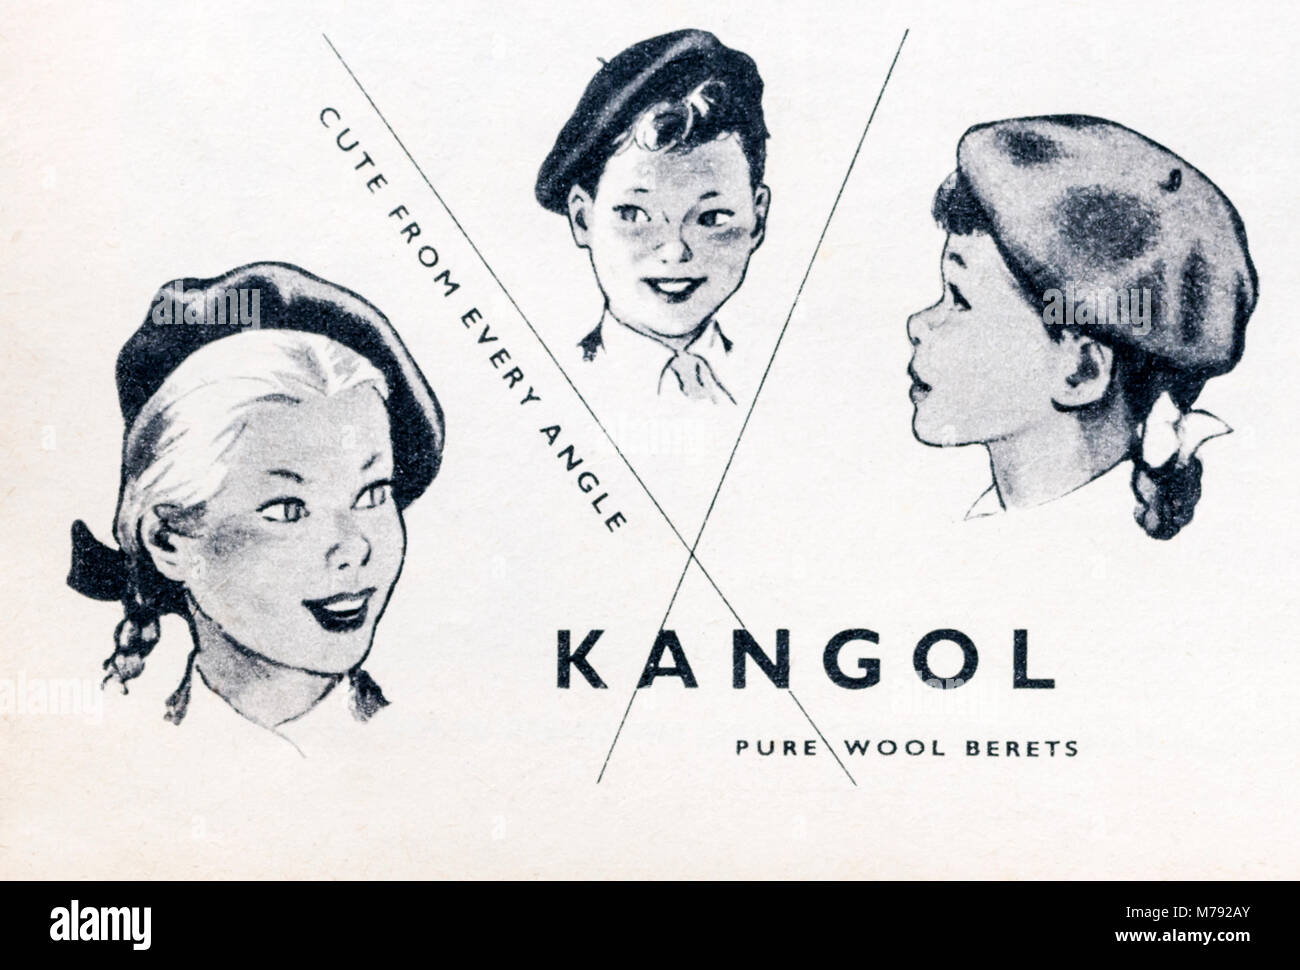 1950s magazine advertisement advertising Kangol pure wool berets. - Stock Image